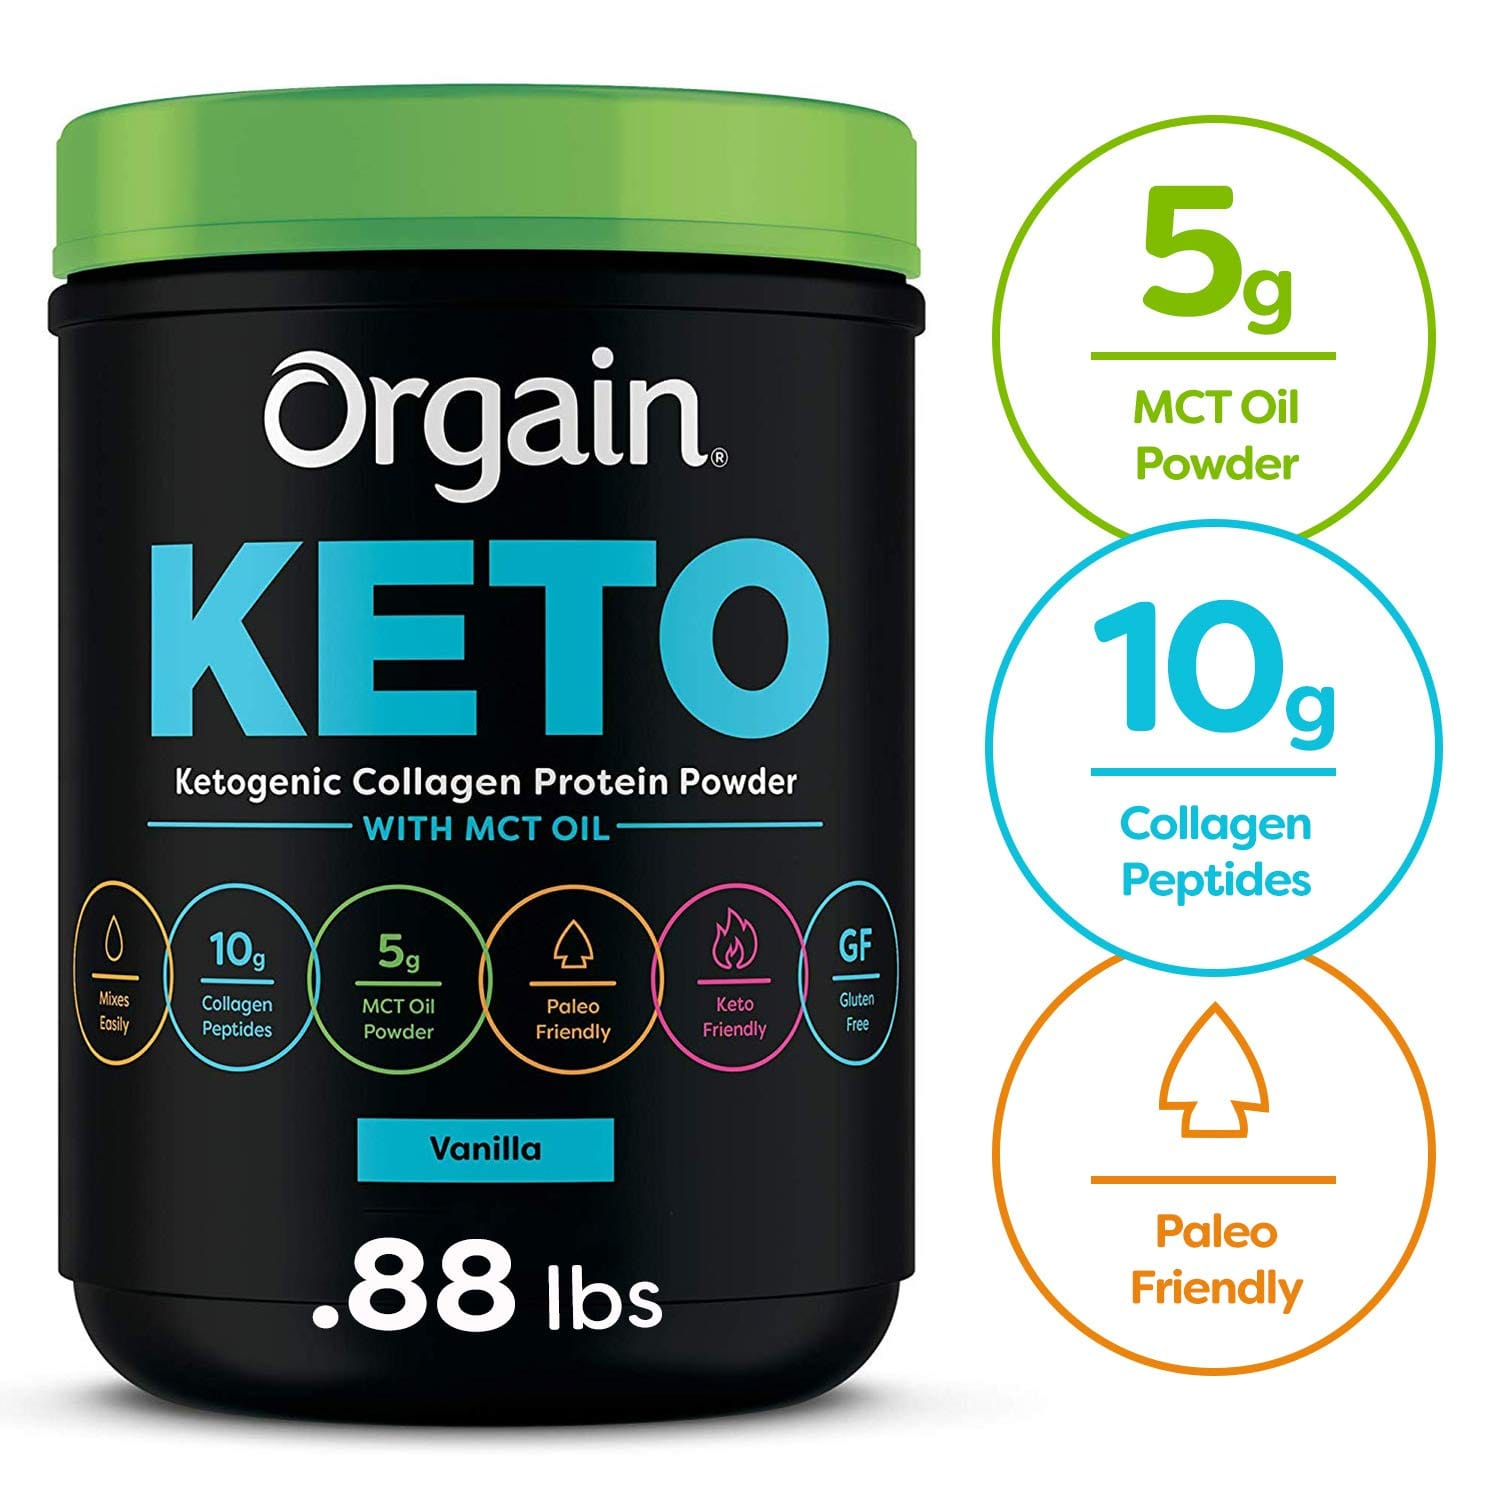 0.88 Lbs. Orgain Keto Collagen Protein Powder with MCT Oil, Vanilla or Chocolate - Keto & Paleo Friendly for $21.49 with Coupon and S&S.